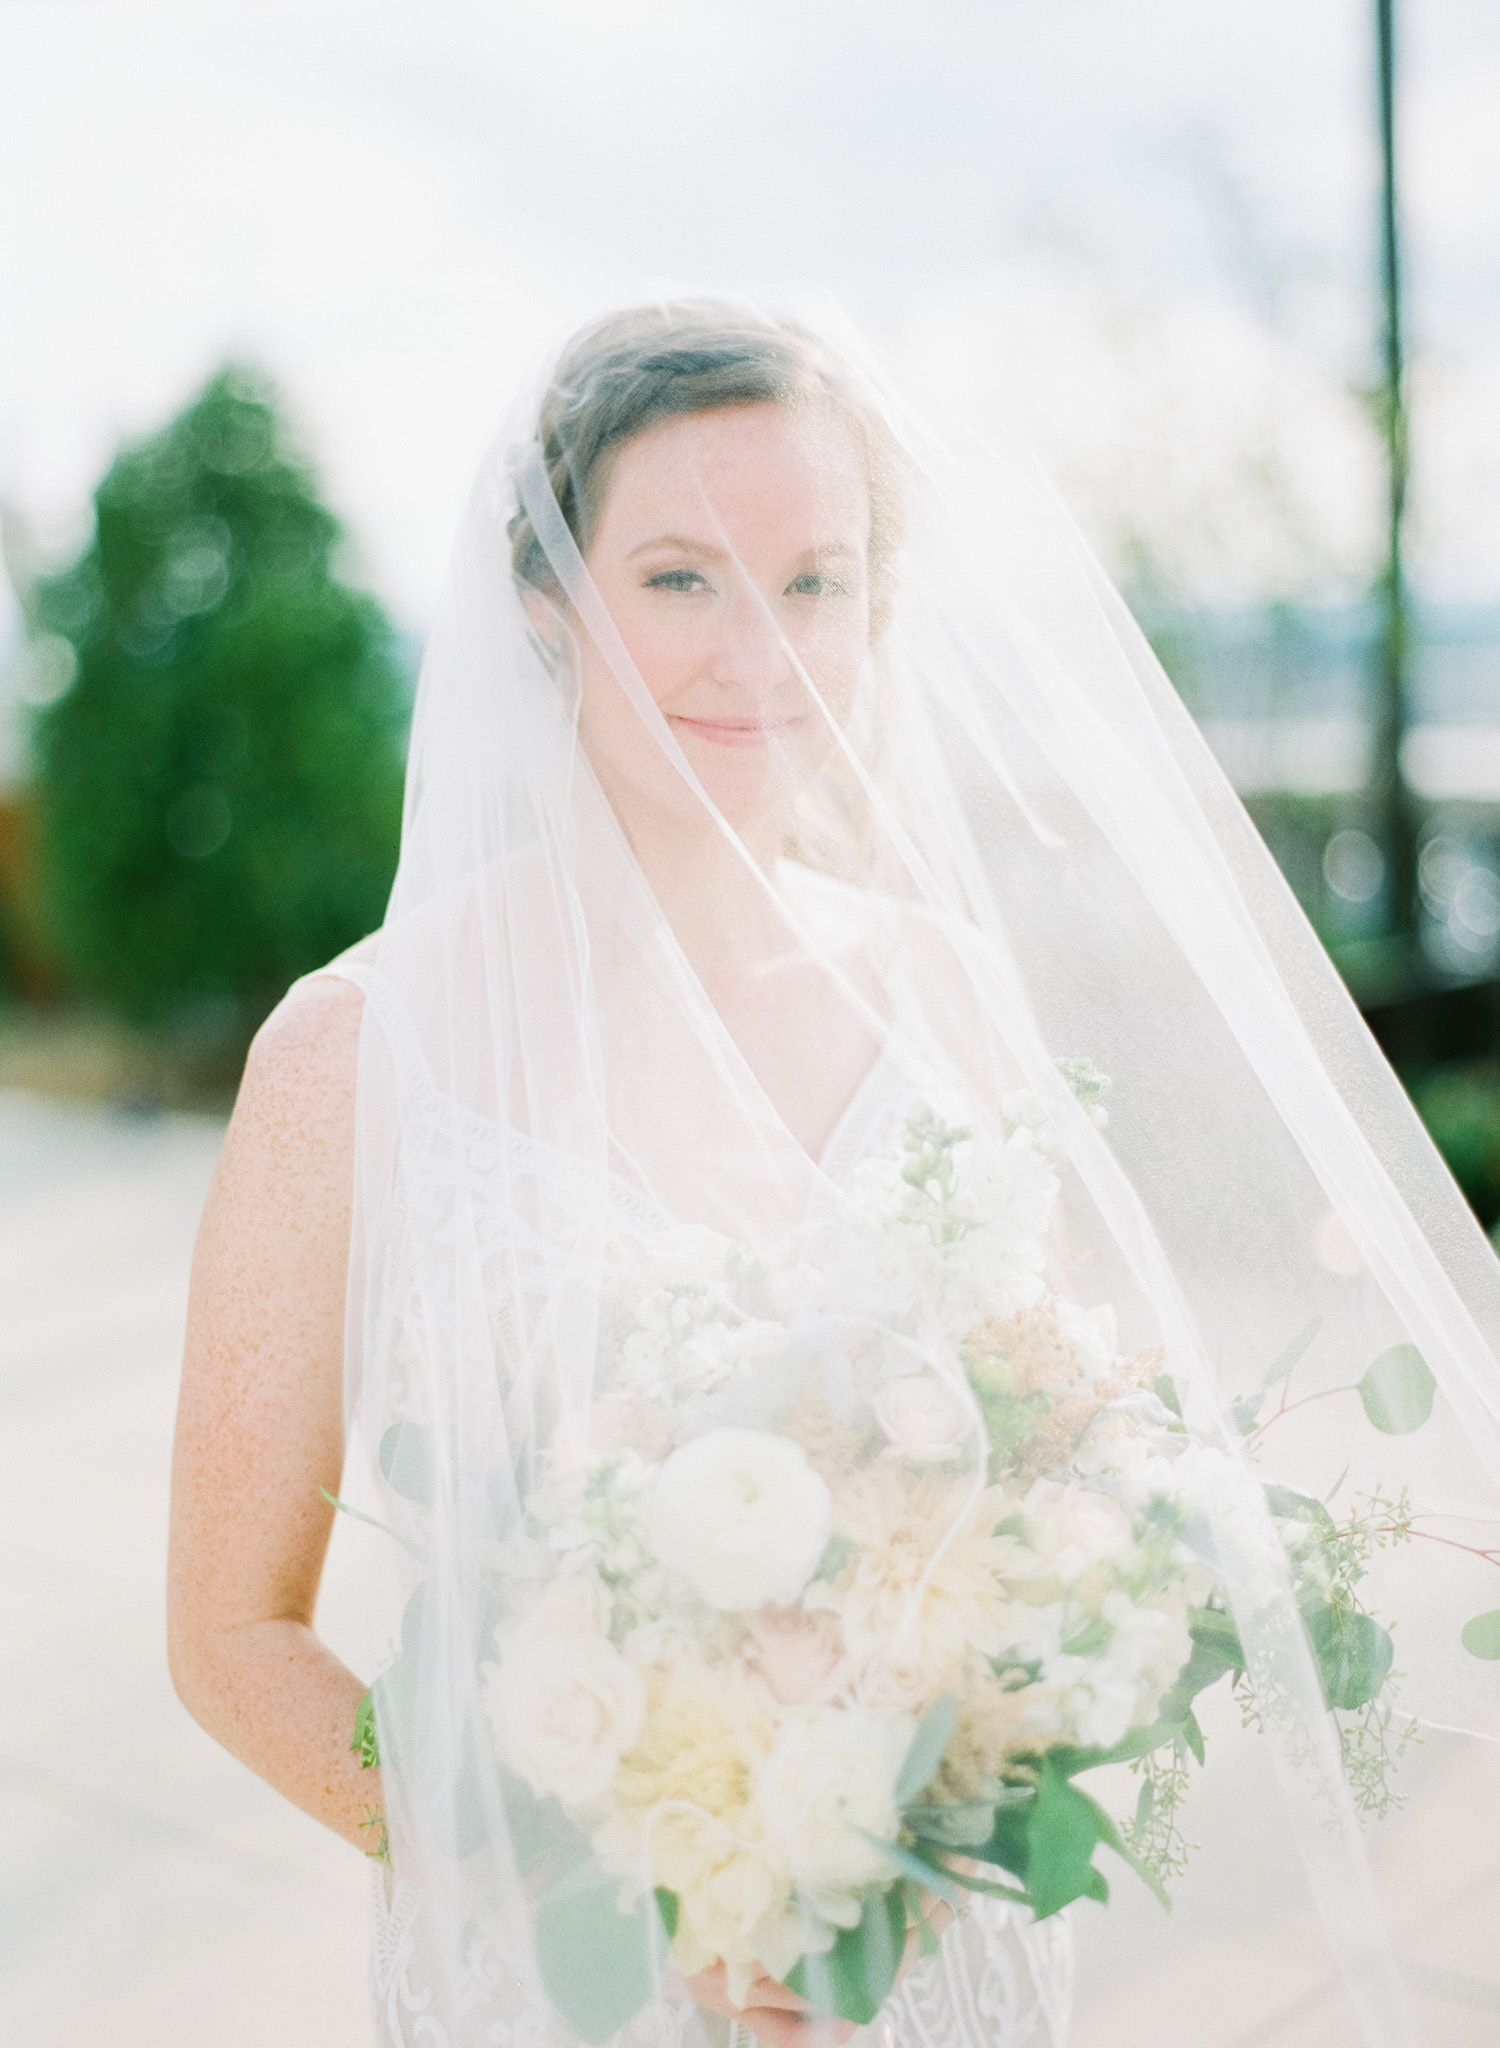 Ethereal portrait of bride with veil holding bouquet